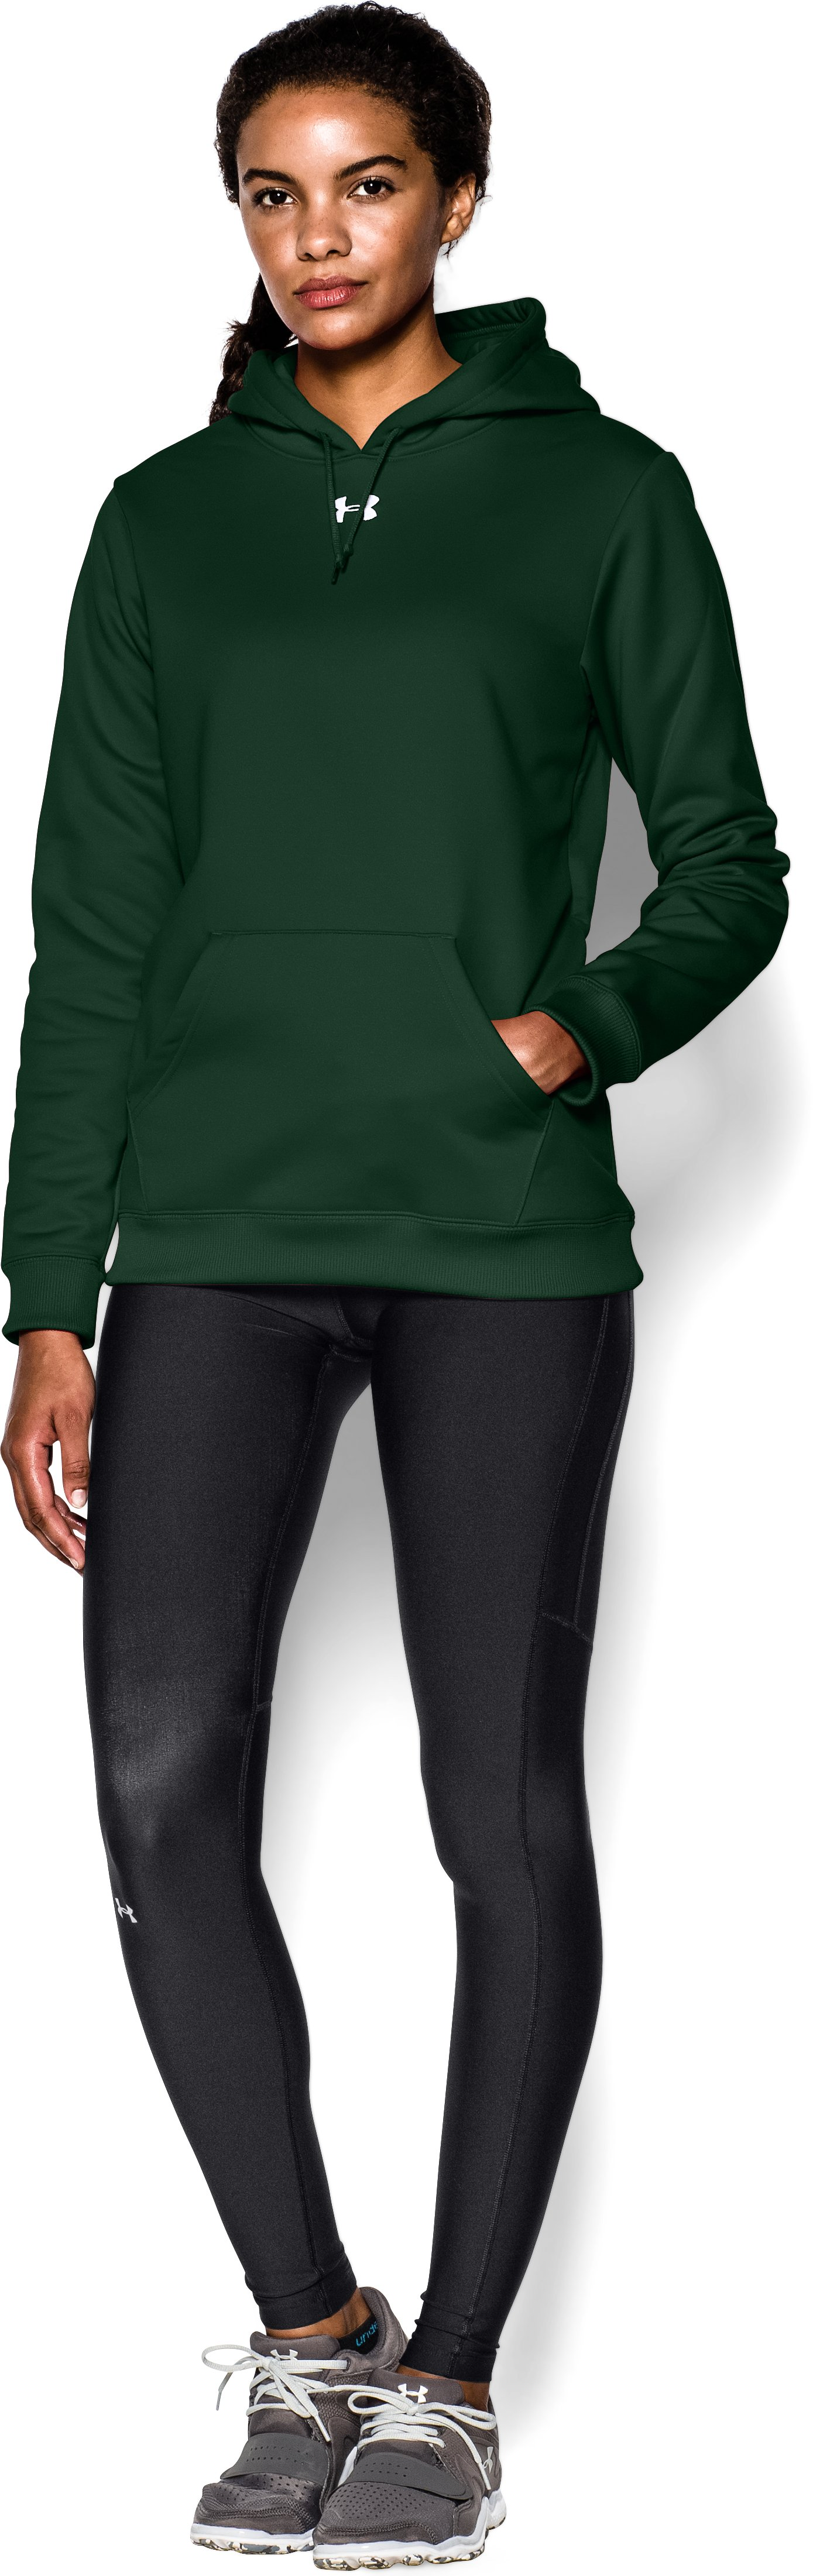 Women's  Armour Fleece® Team Hoodie, Forest Green, Front